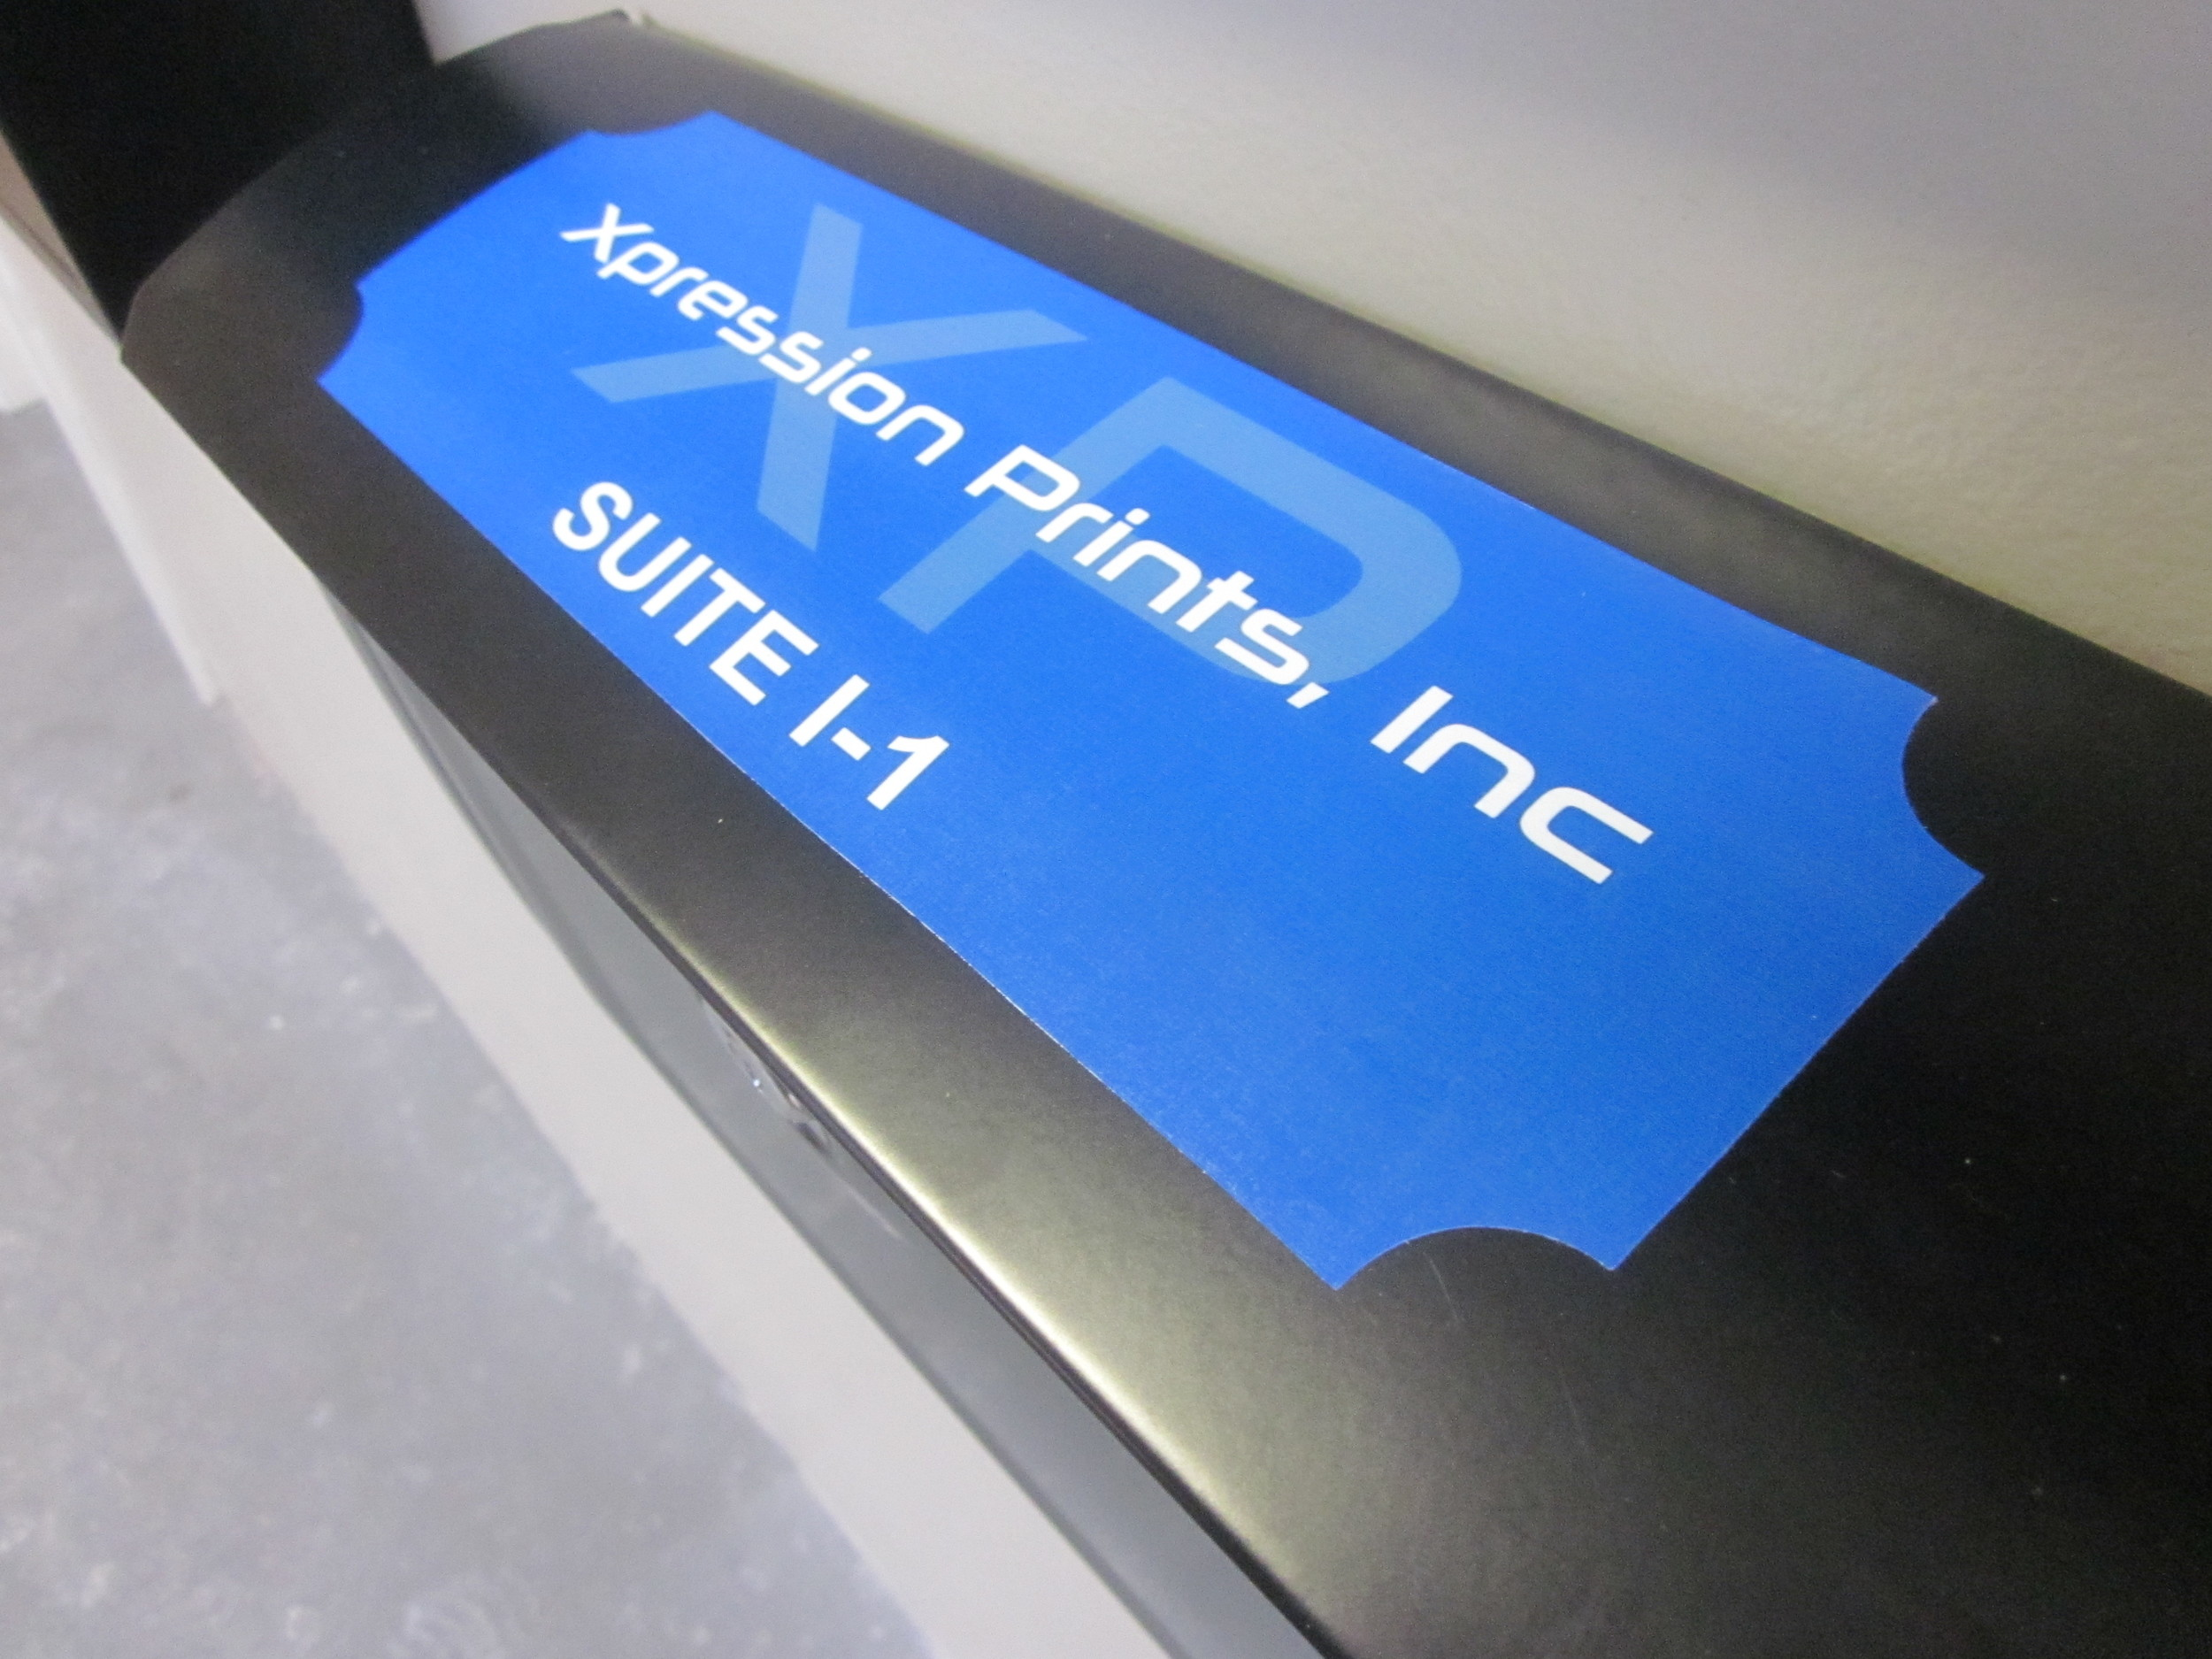 XP offers a wide array of custom vinyl stickers for all applications.